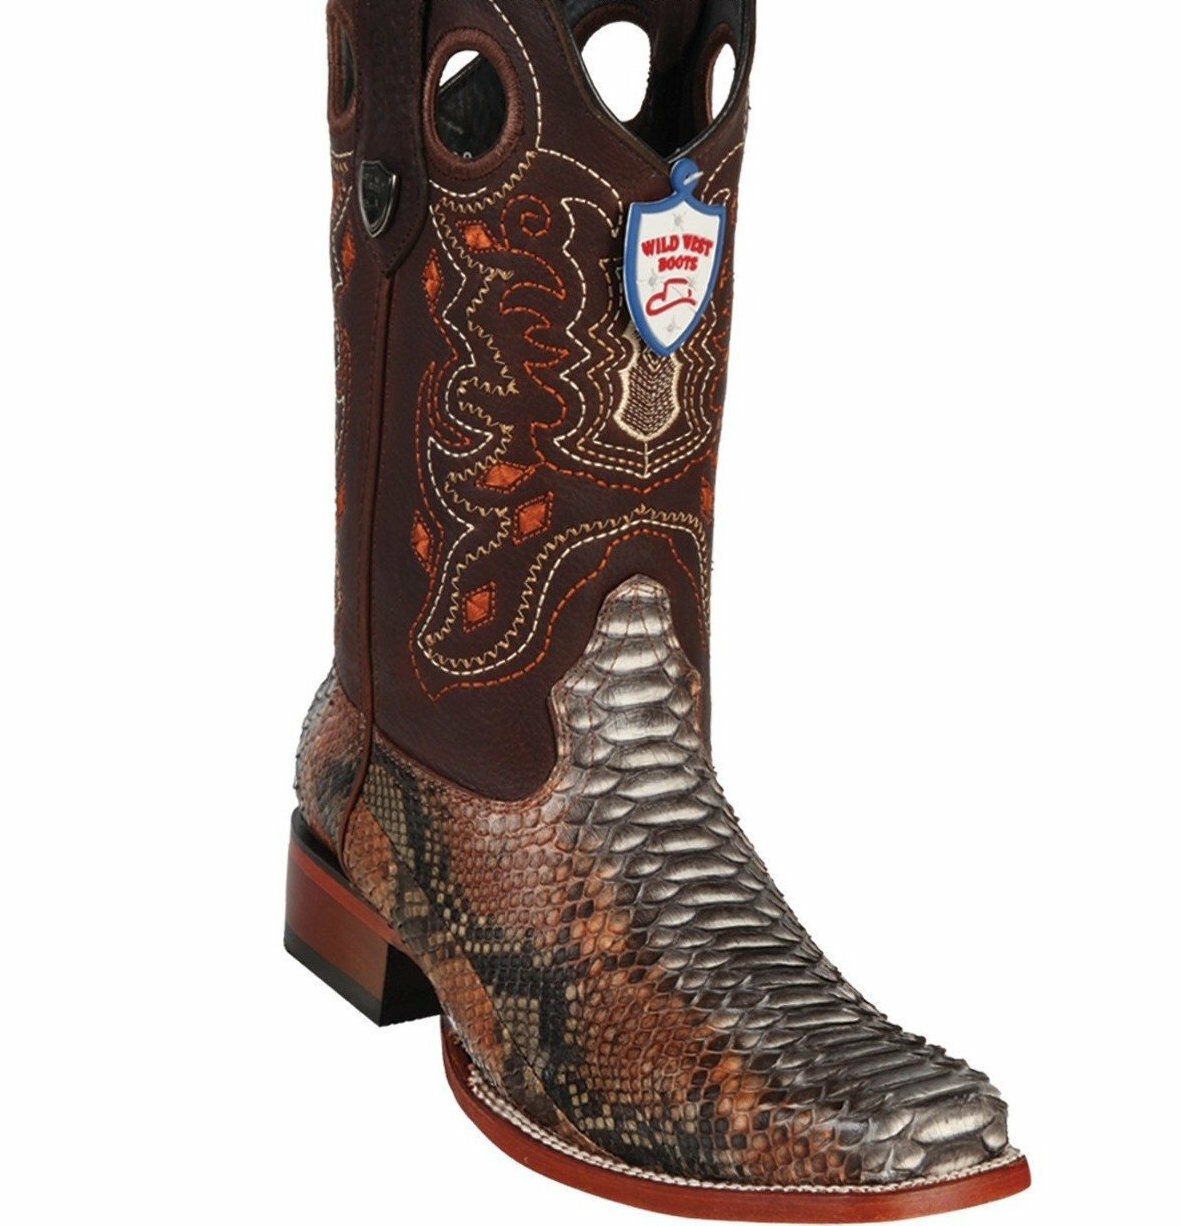 Men's Wild West Genuine Python Square Toe Boots Handcrafted